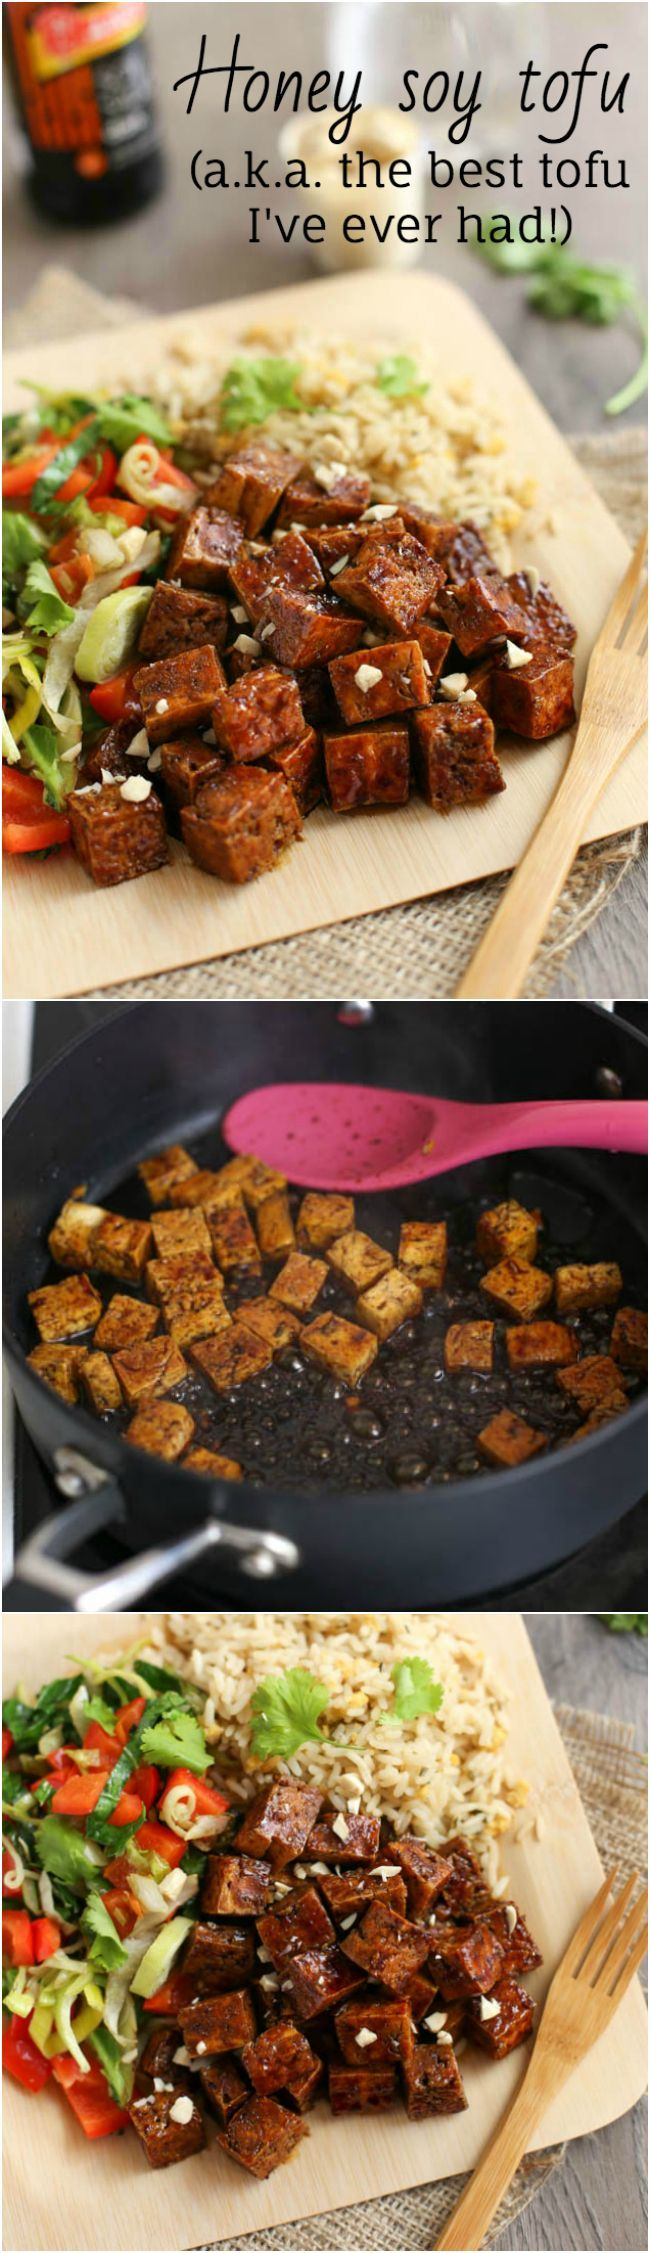 Honey soy tofu - the BEST tofu I've ever had! If you're not a tofu fan, you have to try this recipe. It's so easy, and the sweet, sticky, salty sauce is just incredible.